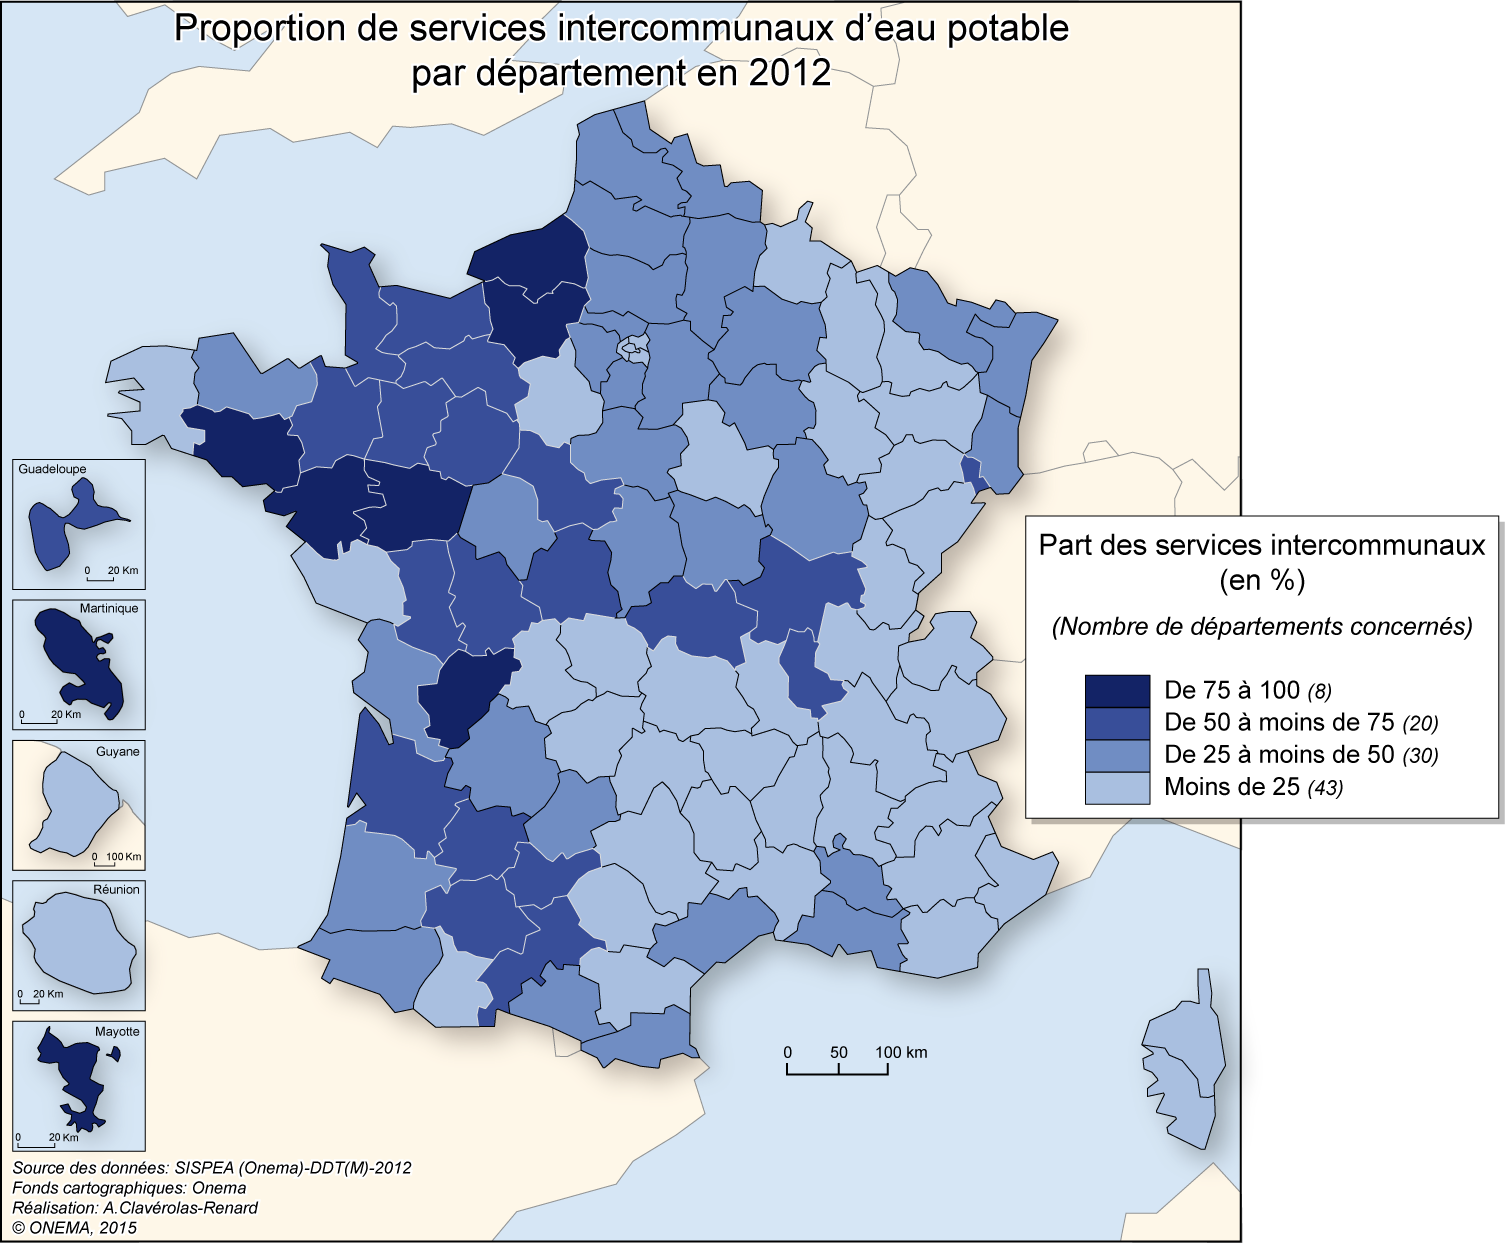 3)	Proportion de services intercommunaux d'eau potable en 2012